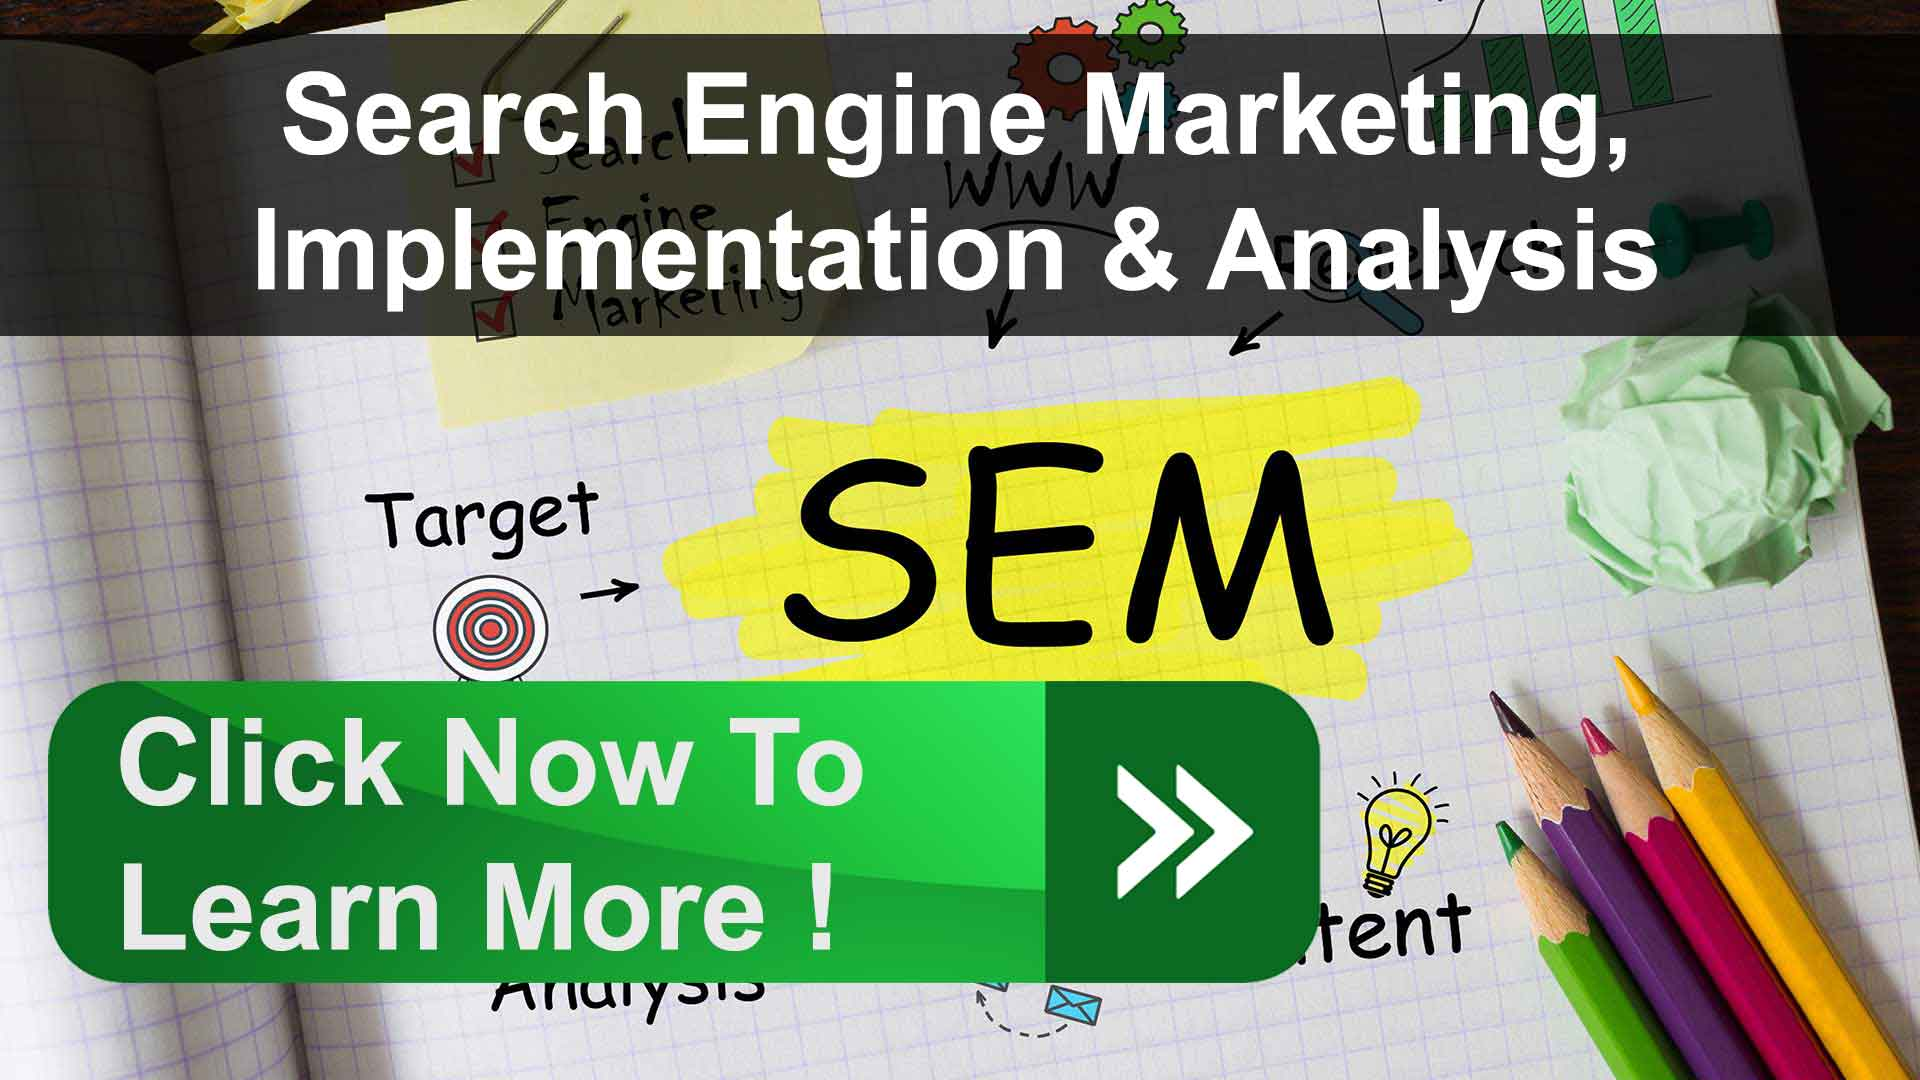 Full-Service Search Engine Marketing, Research, Implementation & Analysis